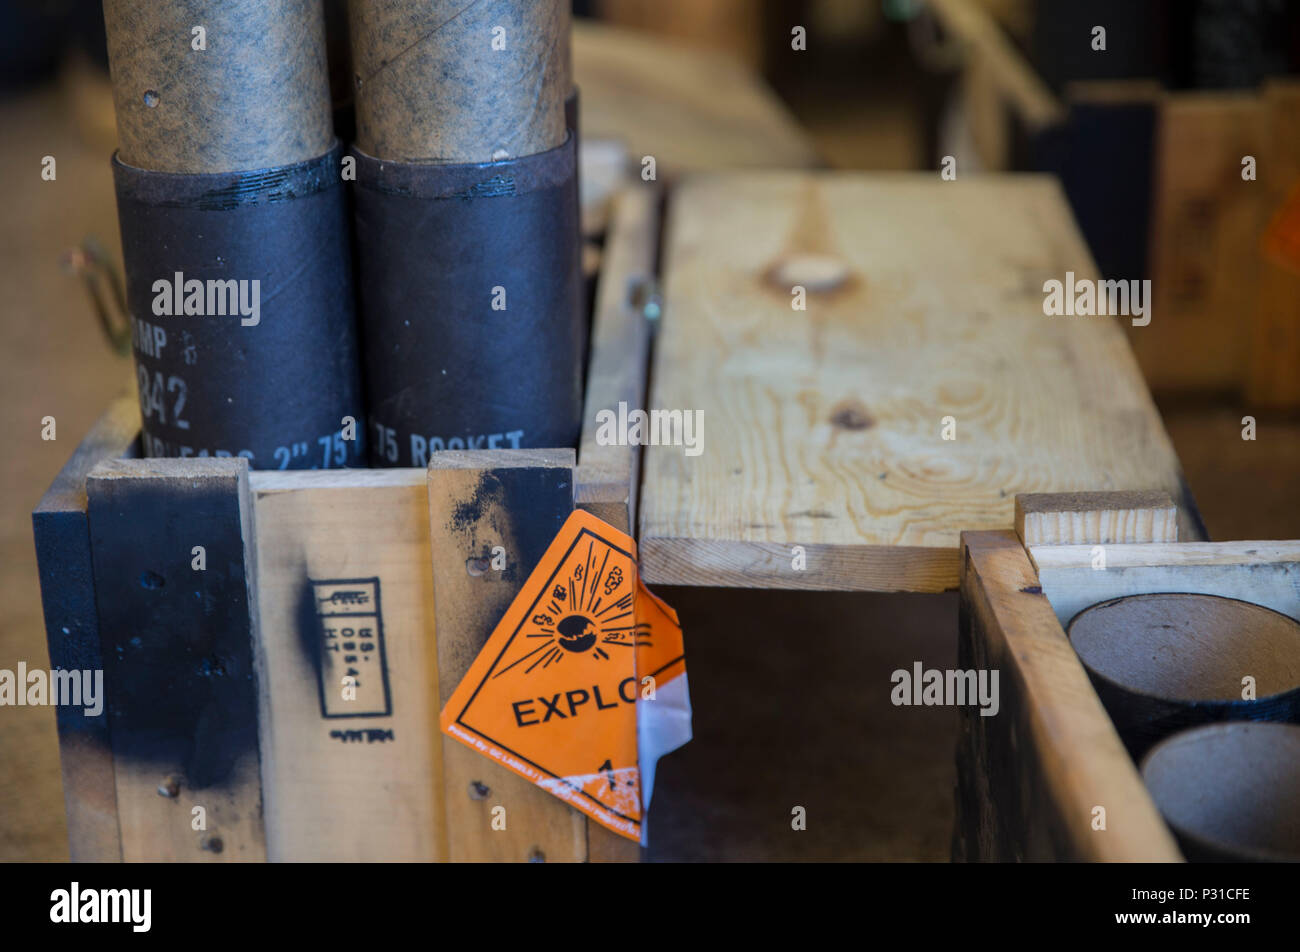 Boxes of 2.75-inch high explosive rockets wait to be assembled during Southern Frontier at Royal Australian Air Force Base Tindal, Australia, Aug. 24, 2016. Southern Frontier afforded Iwakuni Marines the opportunity to train with high explosive weapon body groups typically not used in Japan, while expanding technical and tactical proficiency in their craft. Munitions built during this training are in support of Marine Fighter Attack Squadron (VMFA) 122, who also gain experience and qualifications in low altitude, air-ground, high explosive ordnance delivery at the unit level. (U.S. Marine Corp - Stock Image